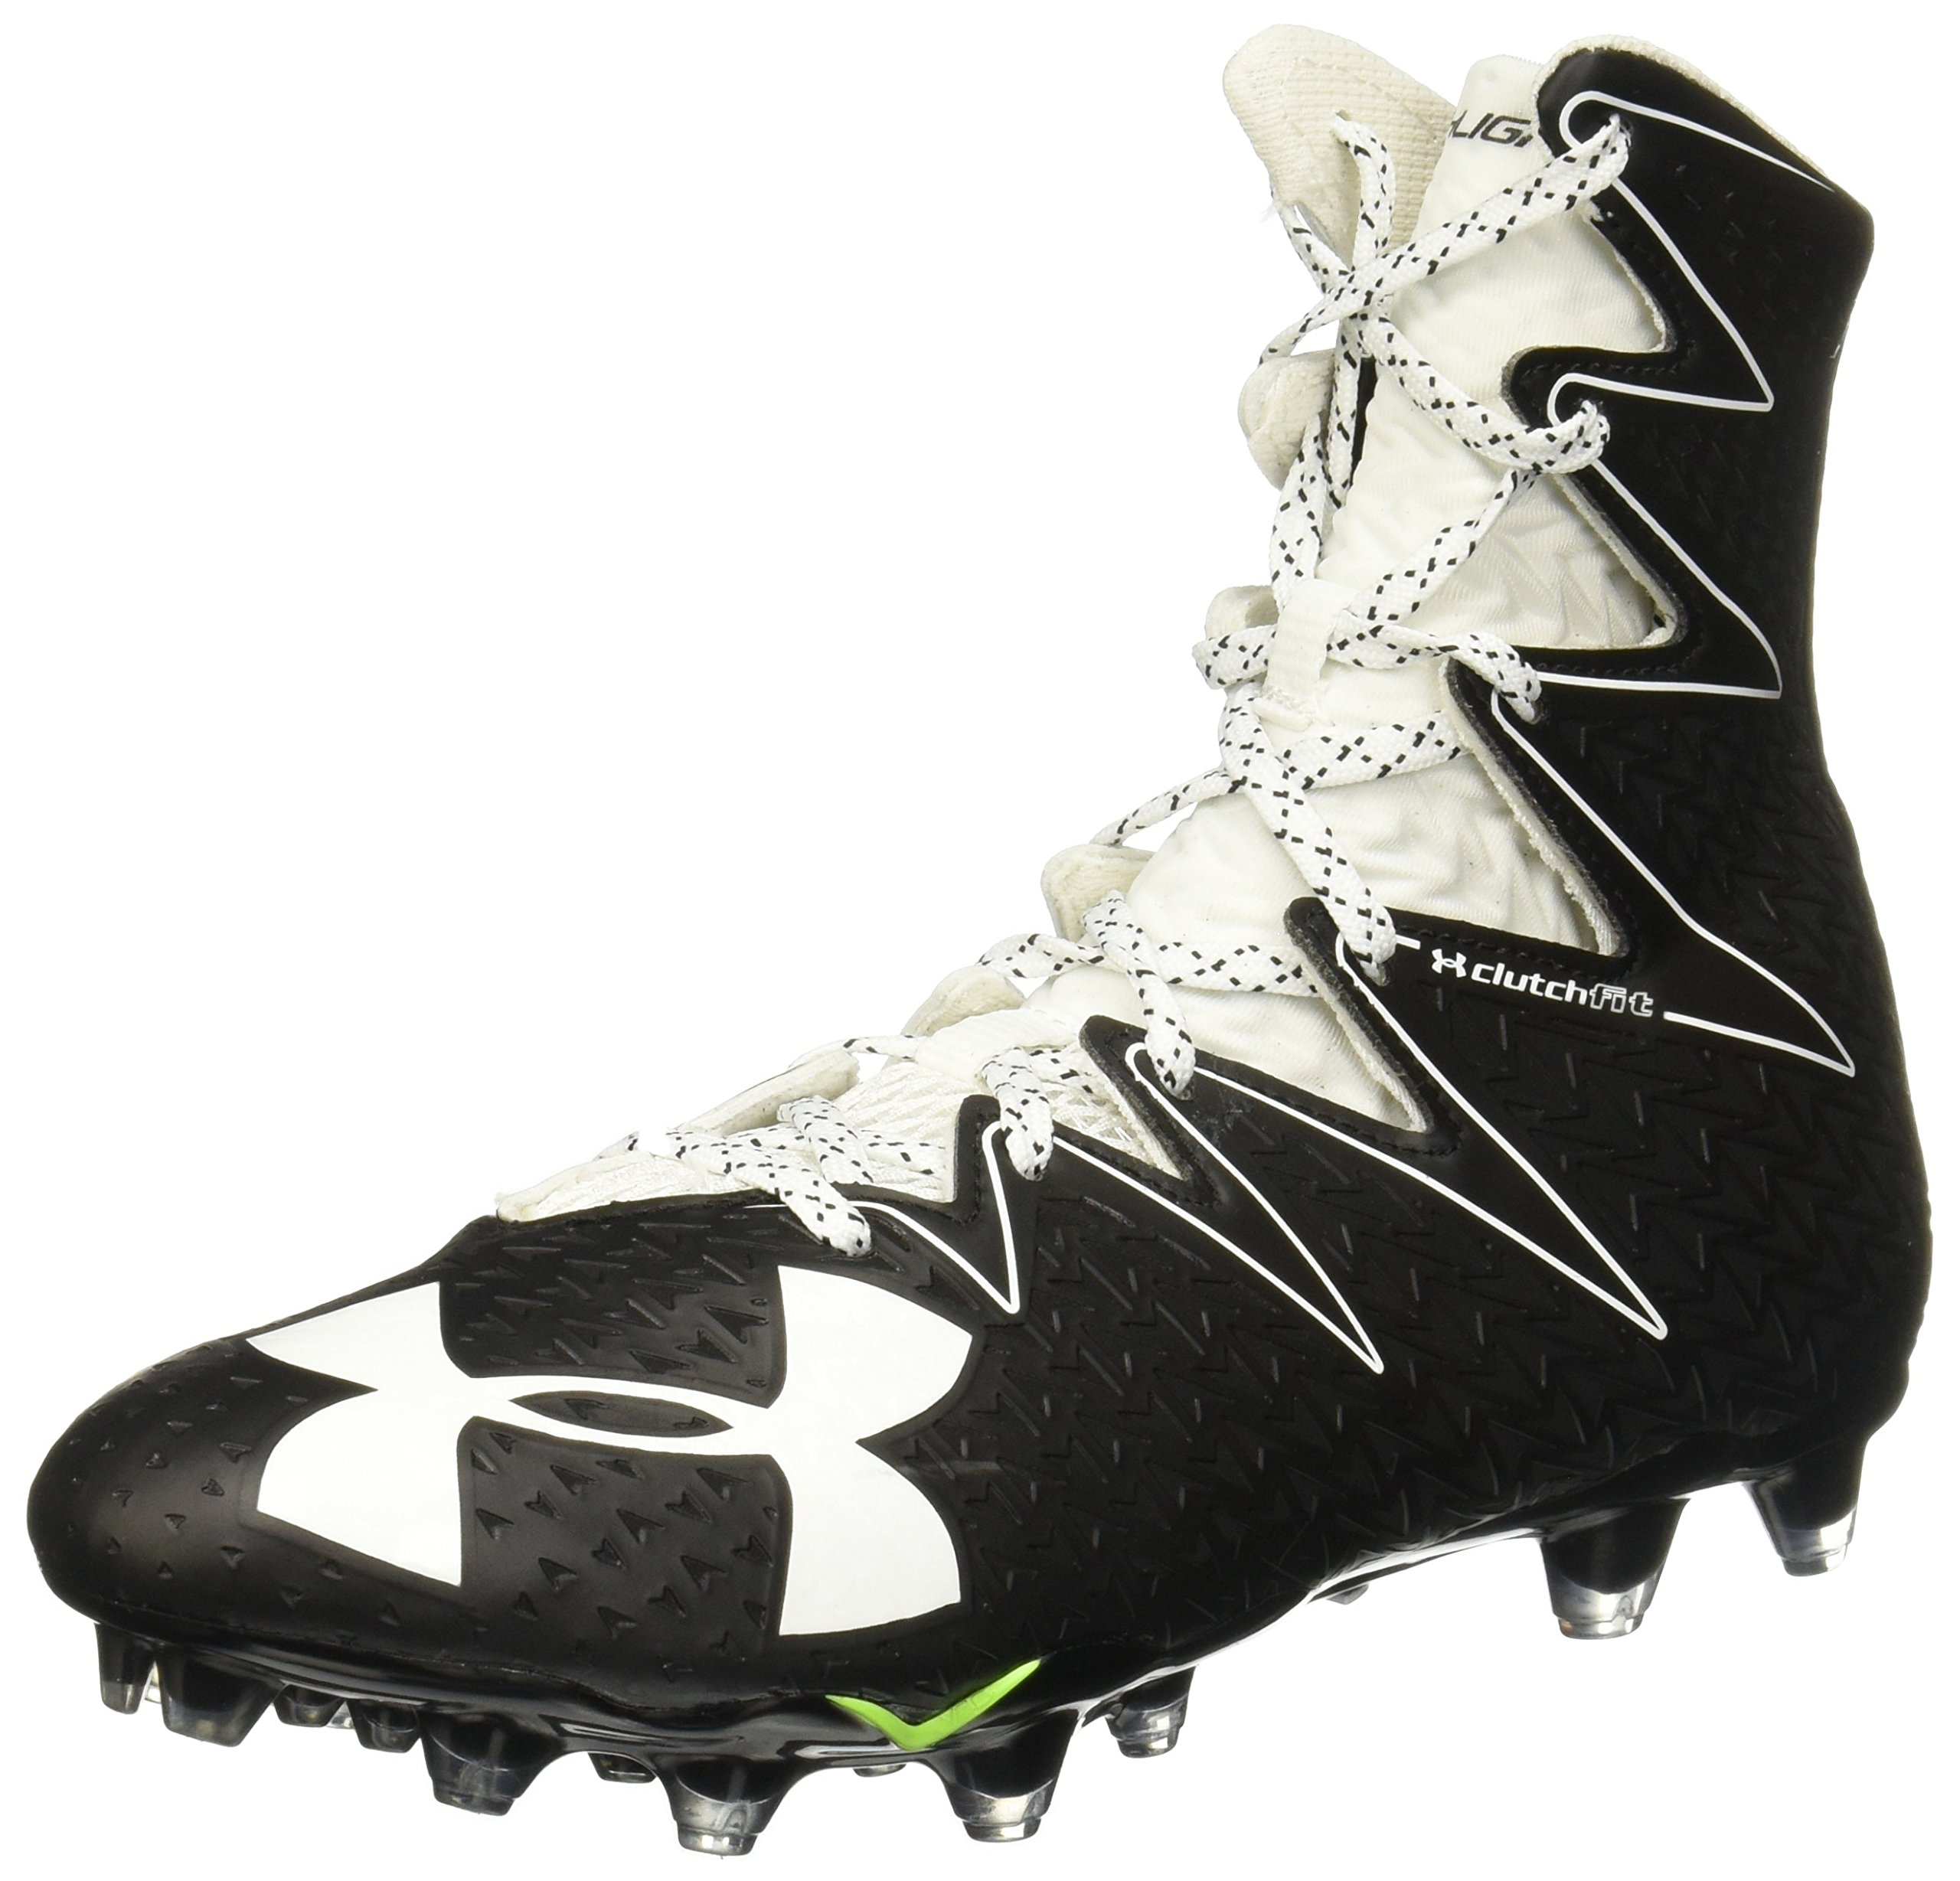 a3e5195f39098 Best Rated in Football Footwear & Helpful Customer Reviews - Amazon.com